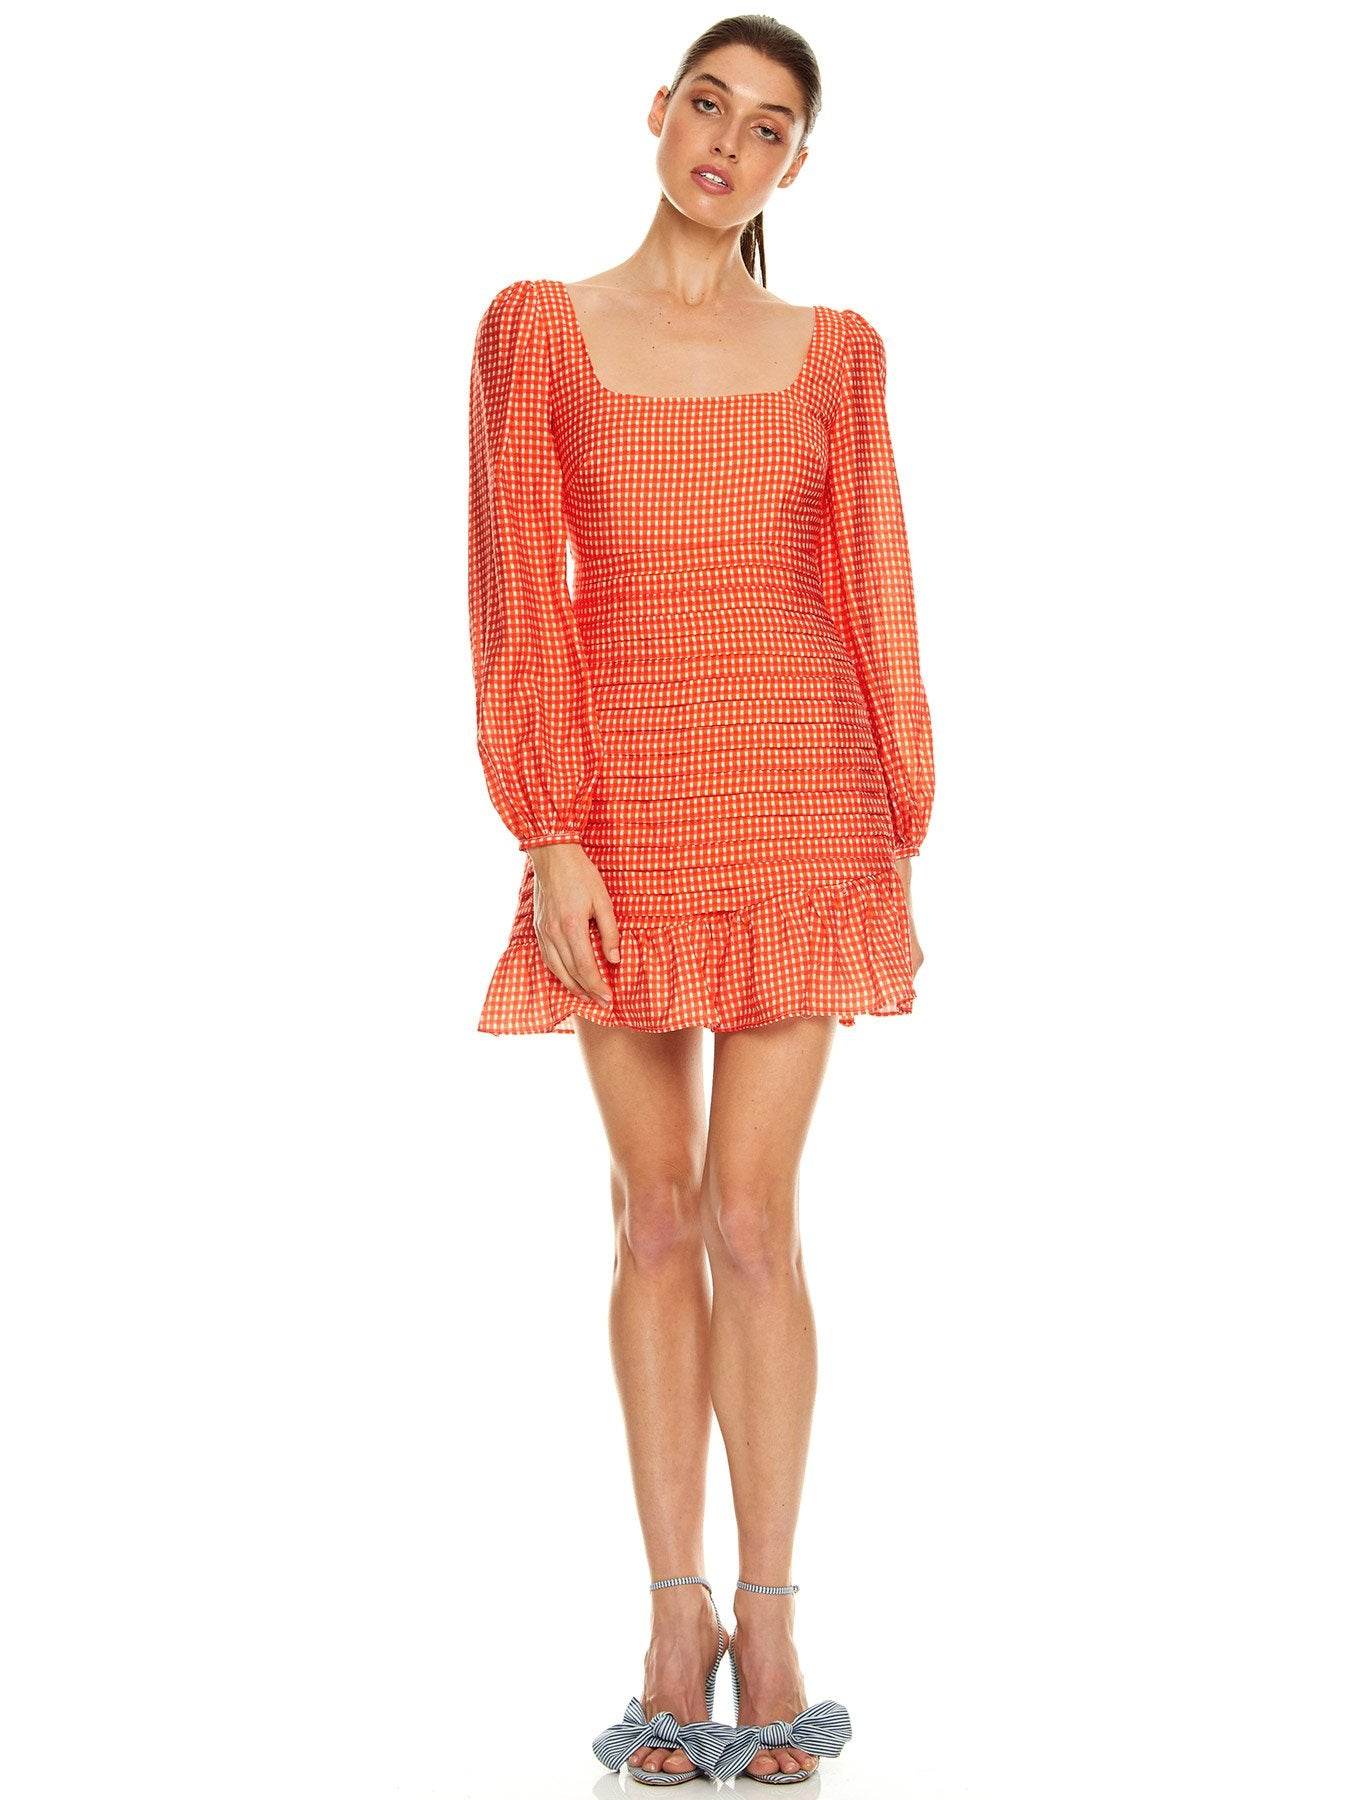 HONEY HUE L/S MINI DRESS